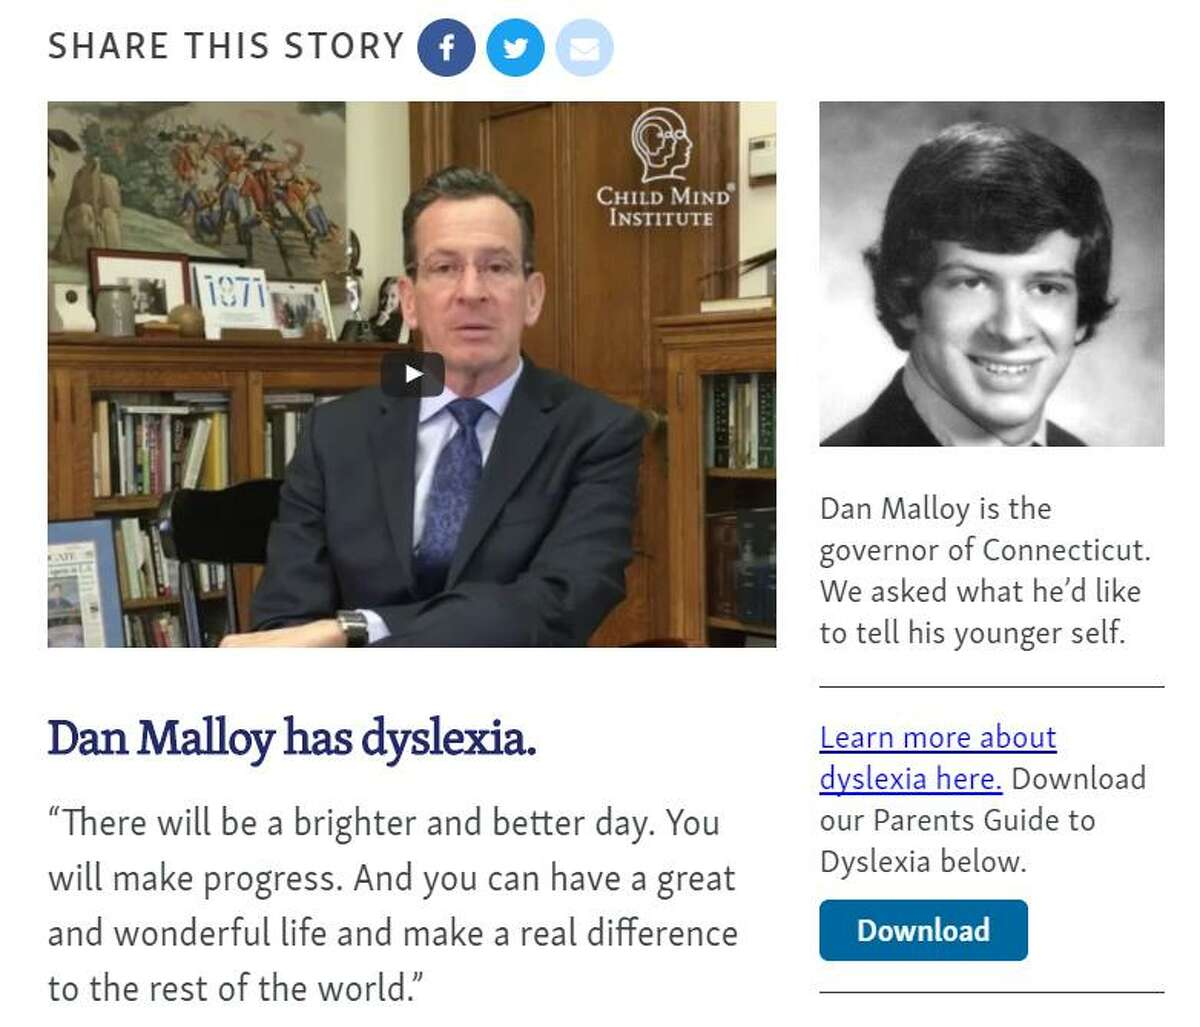 The governor is at his most candid and human this week in a short video statement for dyslexics and their parents for The Child Mind Institute. You can see it by clicking on Malloy?'s high school photo on the May 23 date at: https://speakupforkids.org/splash/